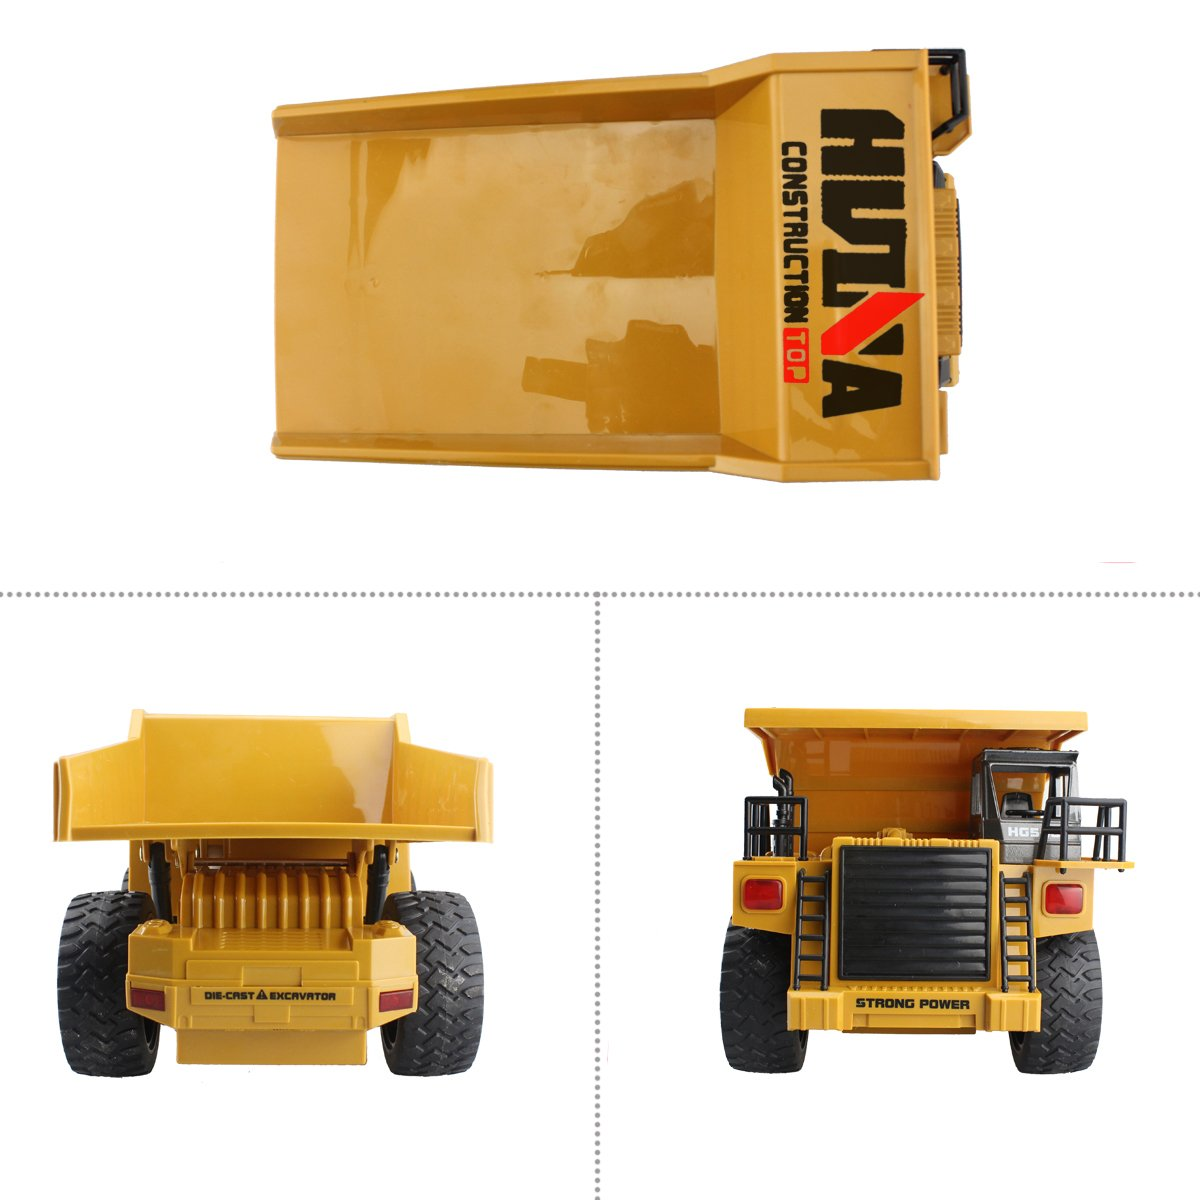 fisca RC Truck 6 Ch 2.4G Alloy Remote Control Dump Truck 4 Wheel Driver Mine Construction Vehicle Toy Machine Model with LED Light by fisca (Image #4)